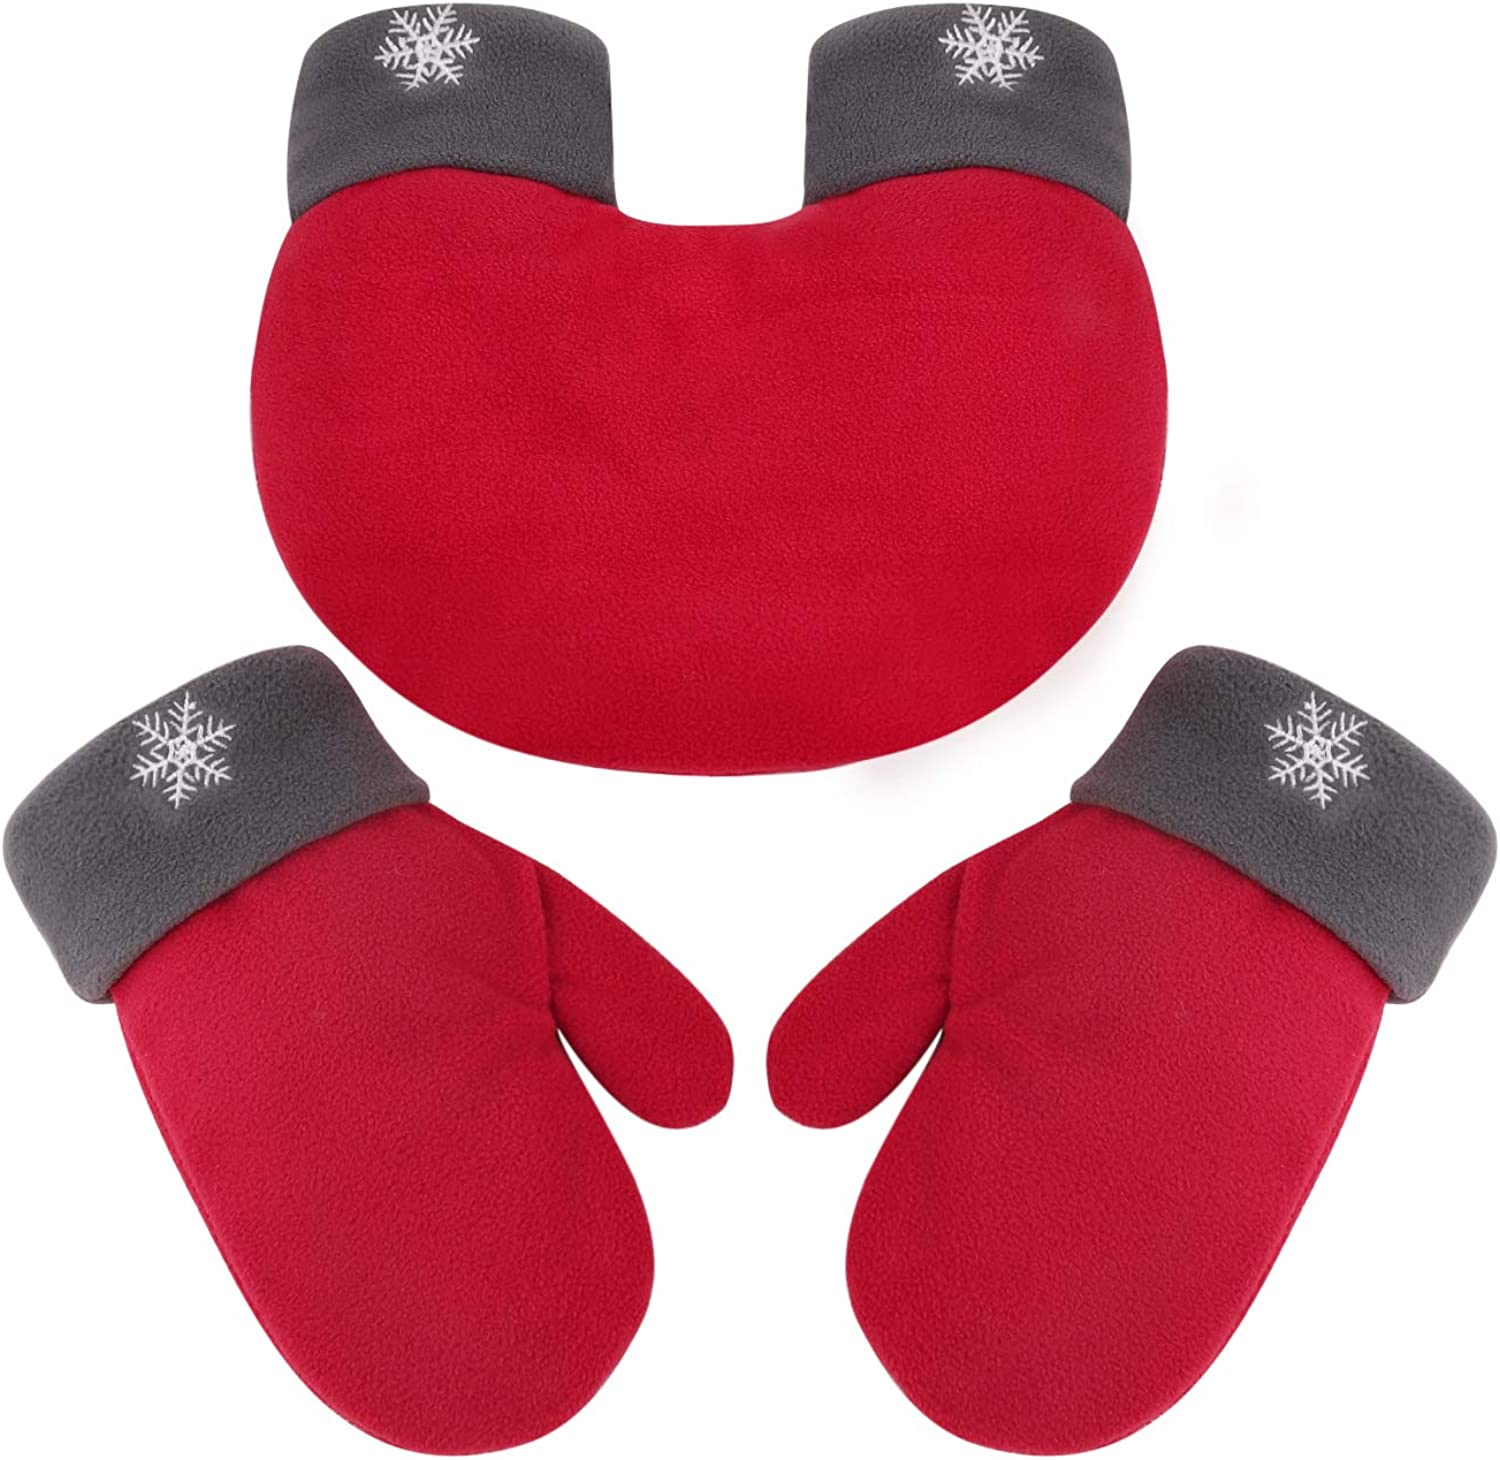 Christmas Lovers Couples Winter Gloves Thick Warm Mittens Valentine's Day Gift